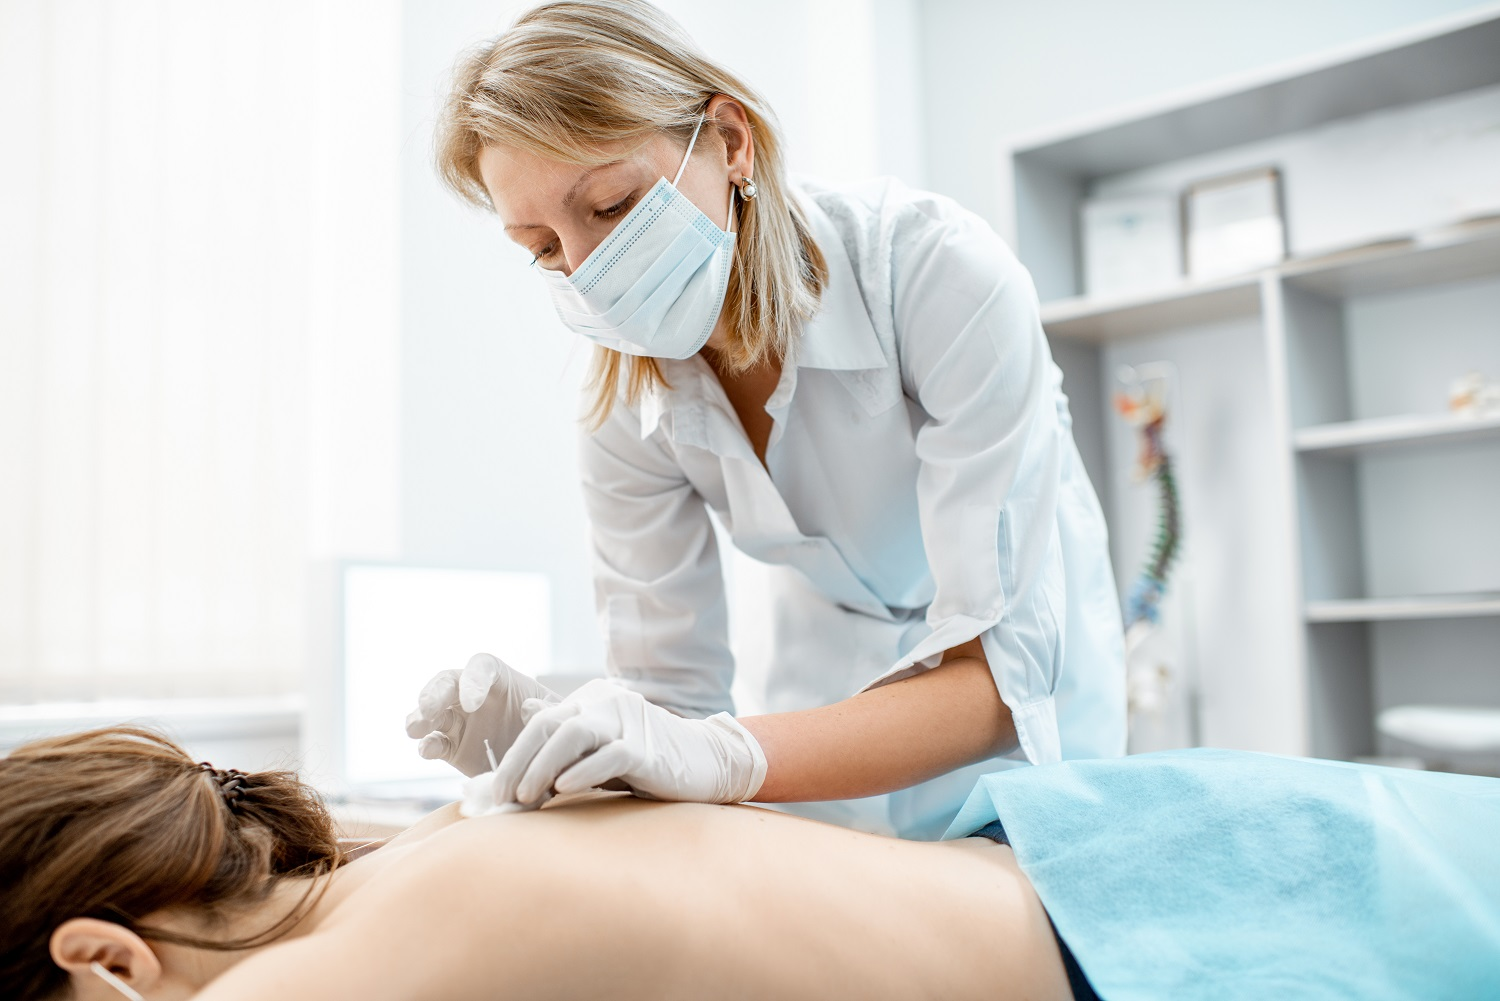 Neuropathologist puts needles into the woman's back removing inflammation of the muscles during the acupuncture treatment in the office